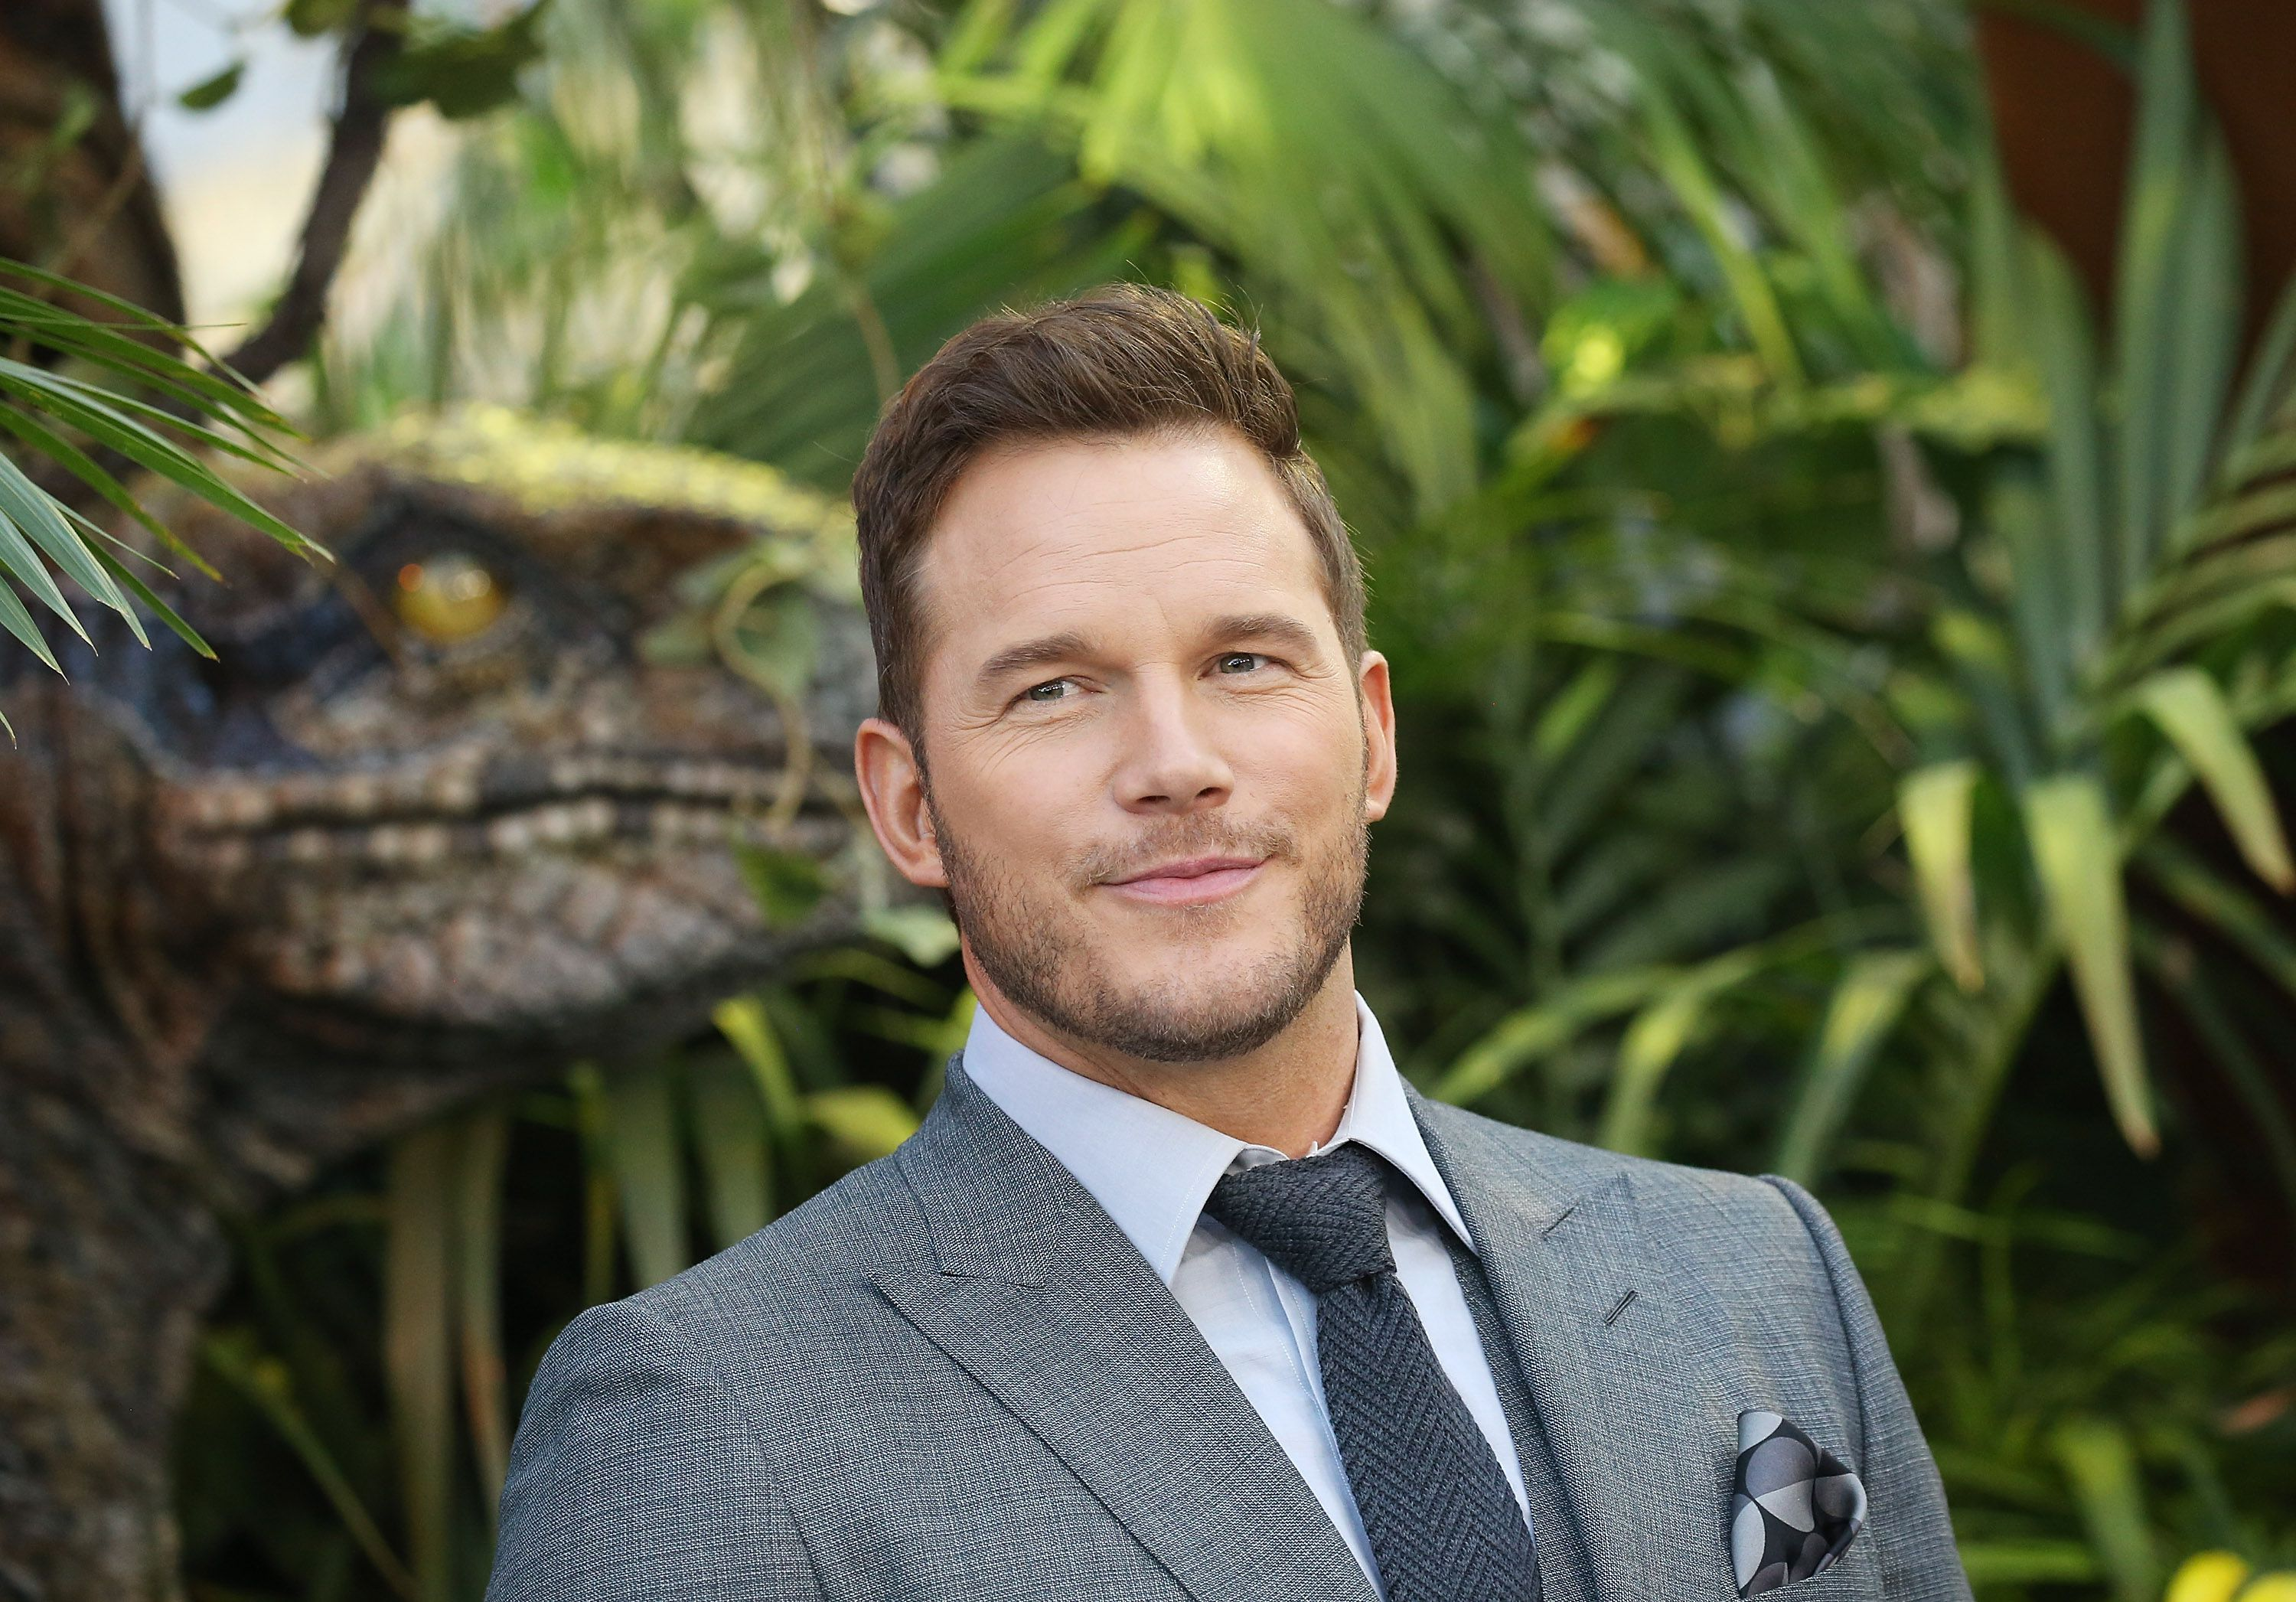 Chris Pratt giving a slight smile for a picture. He is wearing a three piece